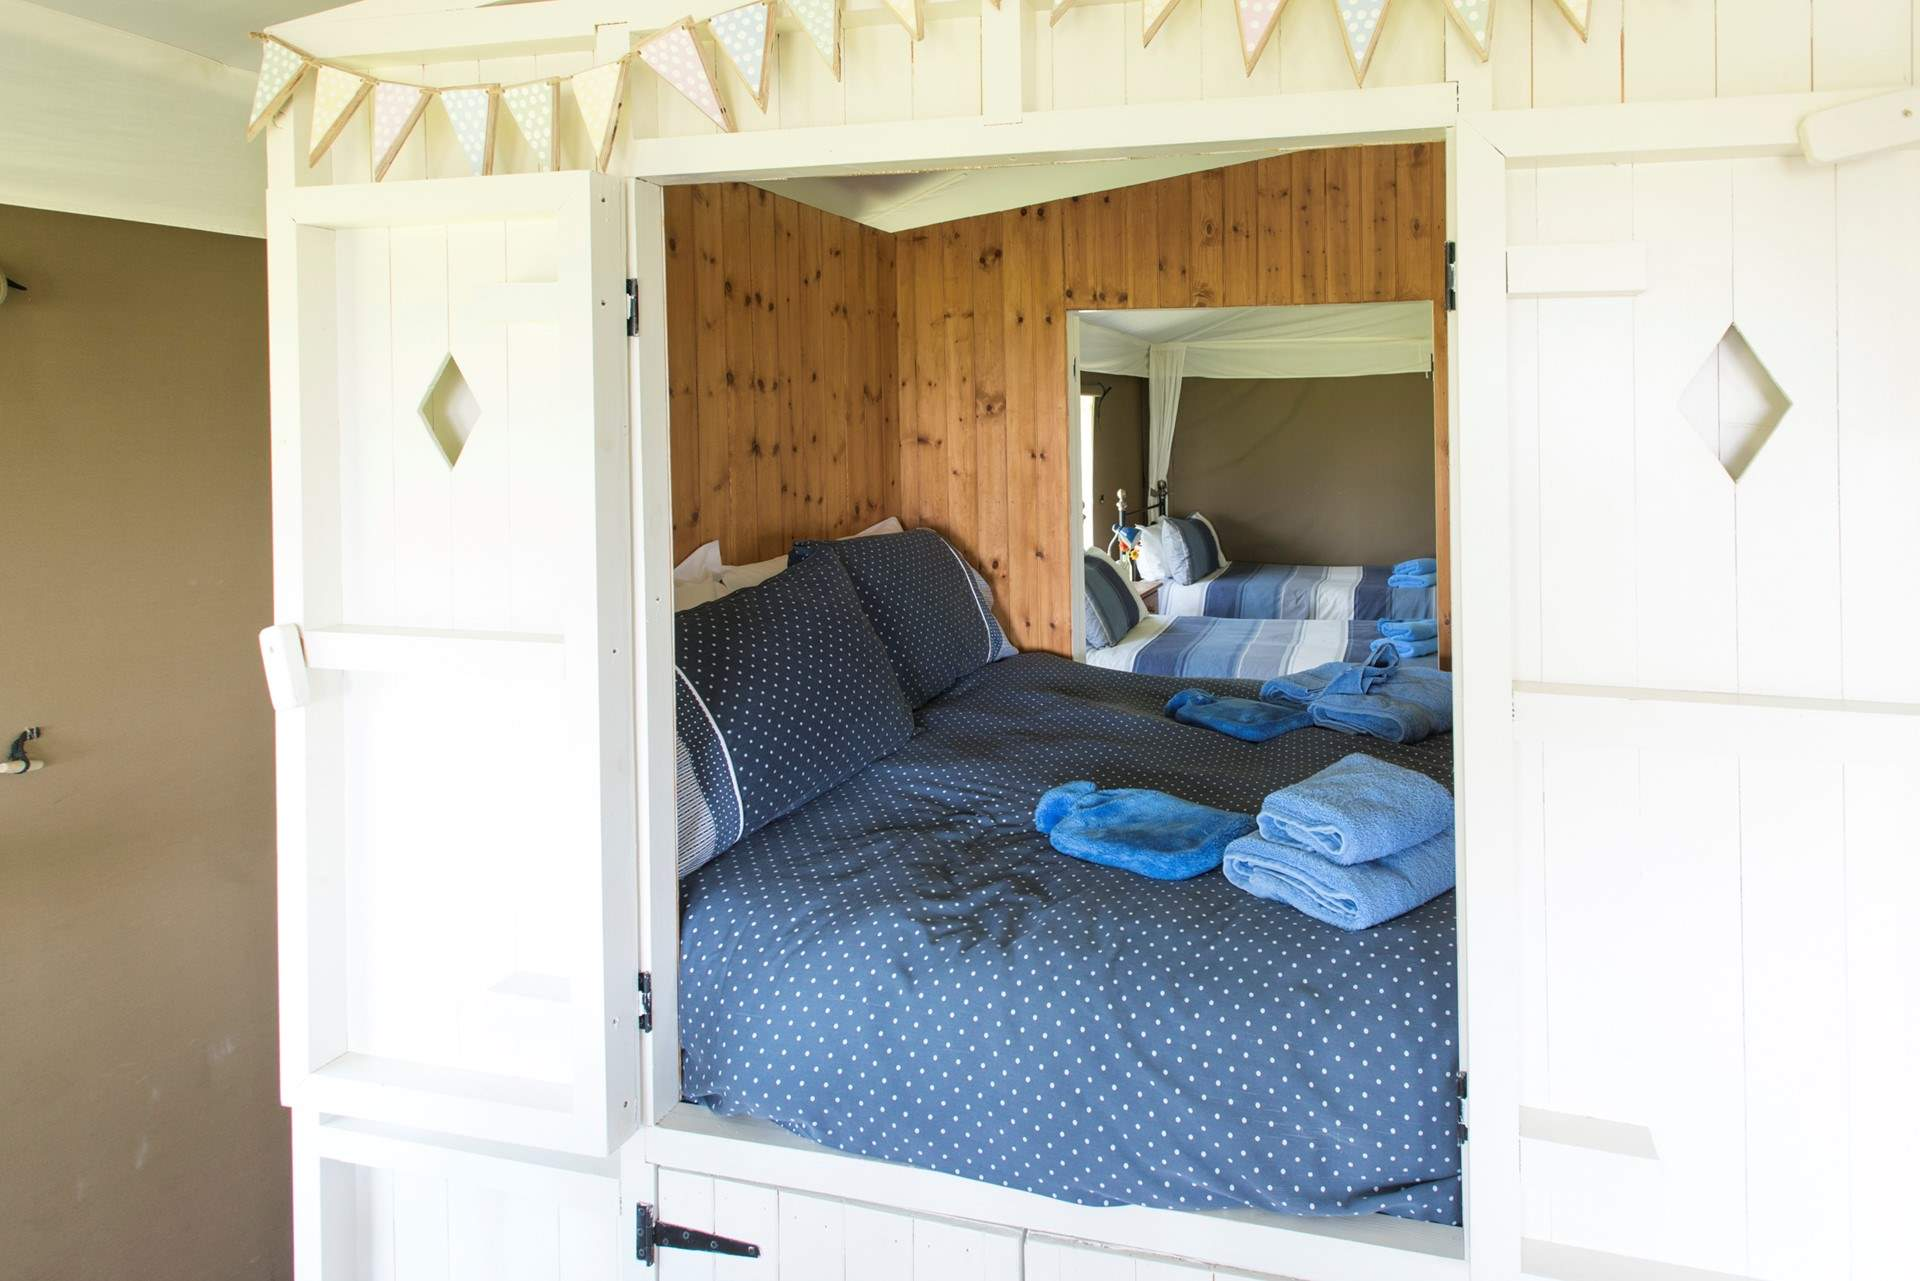 the lovely double cabin bed